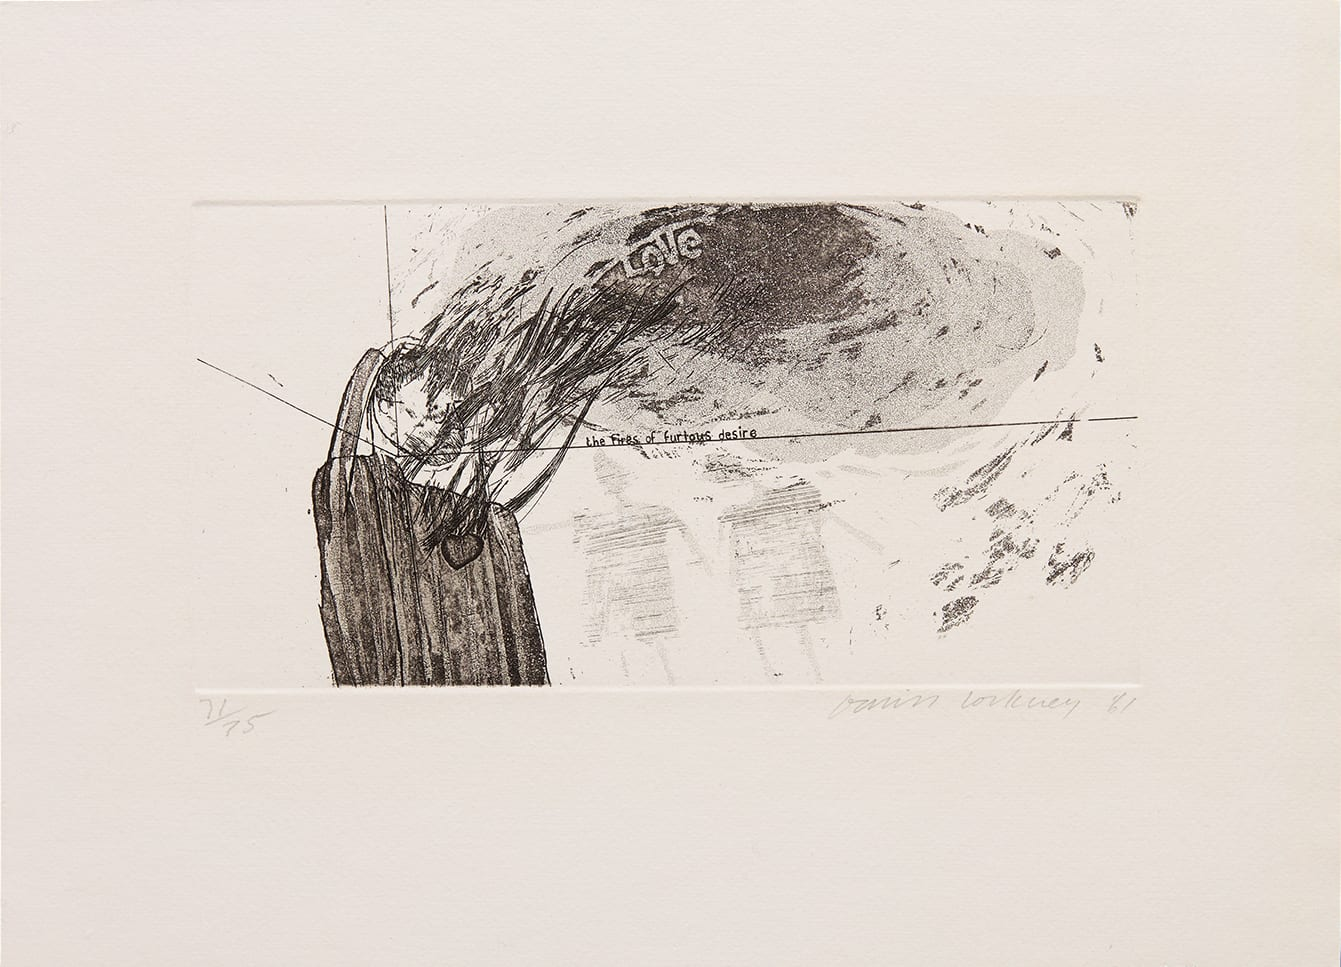 """<span class=""""link fancybox-details-link""""><a href=""""/content/viewing-room/25/artworks7516/"""">View Detail Page</a></span><div class=""""signed_and_dated"""">signed 'David Hockney' in pencil lower right, dated ''61', and numbered from the edition of 75, lower left</div> <div class=""""medium"""">etching and aquatint on handmade Crisbrook laid paper</div> <div class=""""dimensions"""">plate size: 14.4 x 27.4 cm<br /> sheet size: 29 x 39.5 cm</div> <div class=""""edition_details"""">edition 71 of 75 aside from 16 Artist's Proofs</div>"""